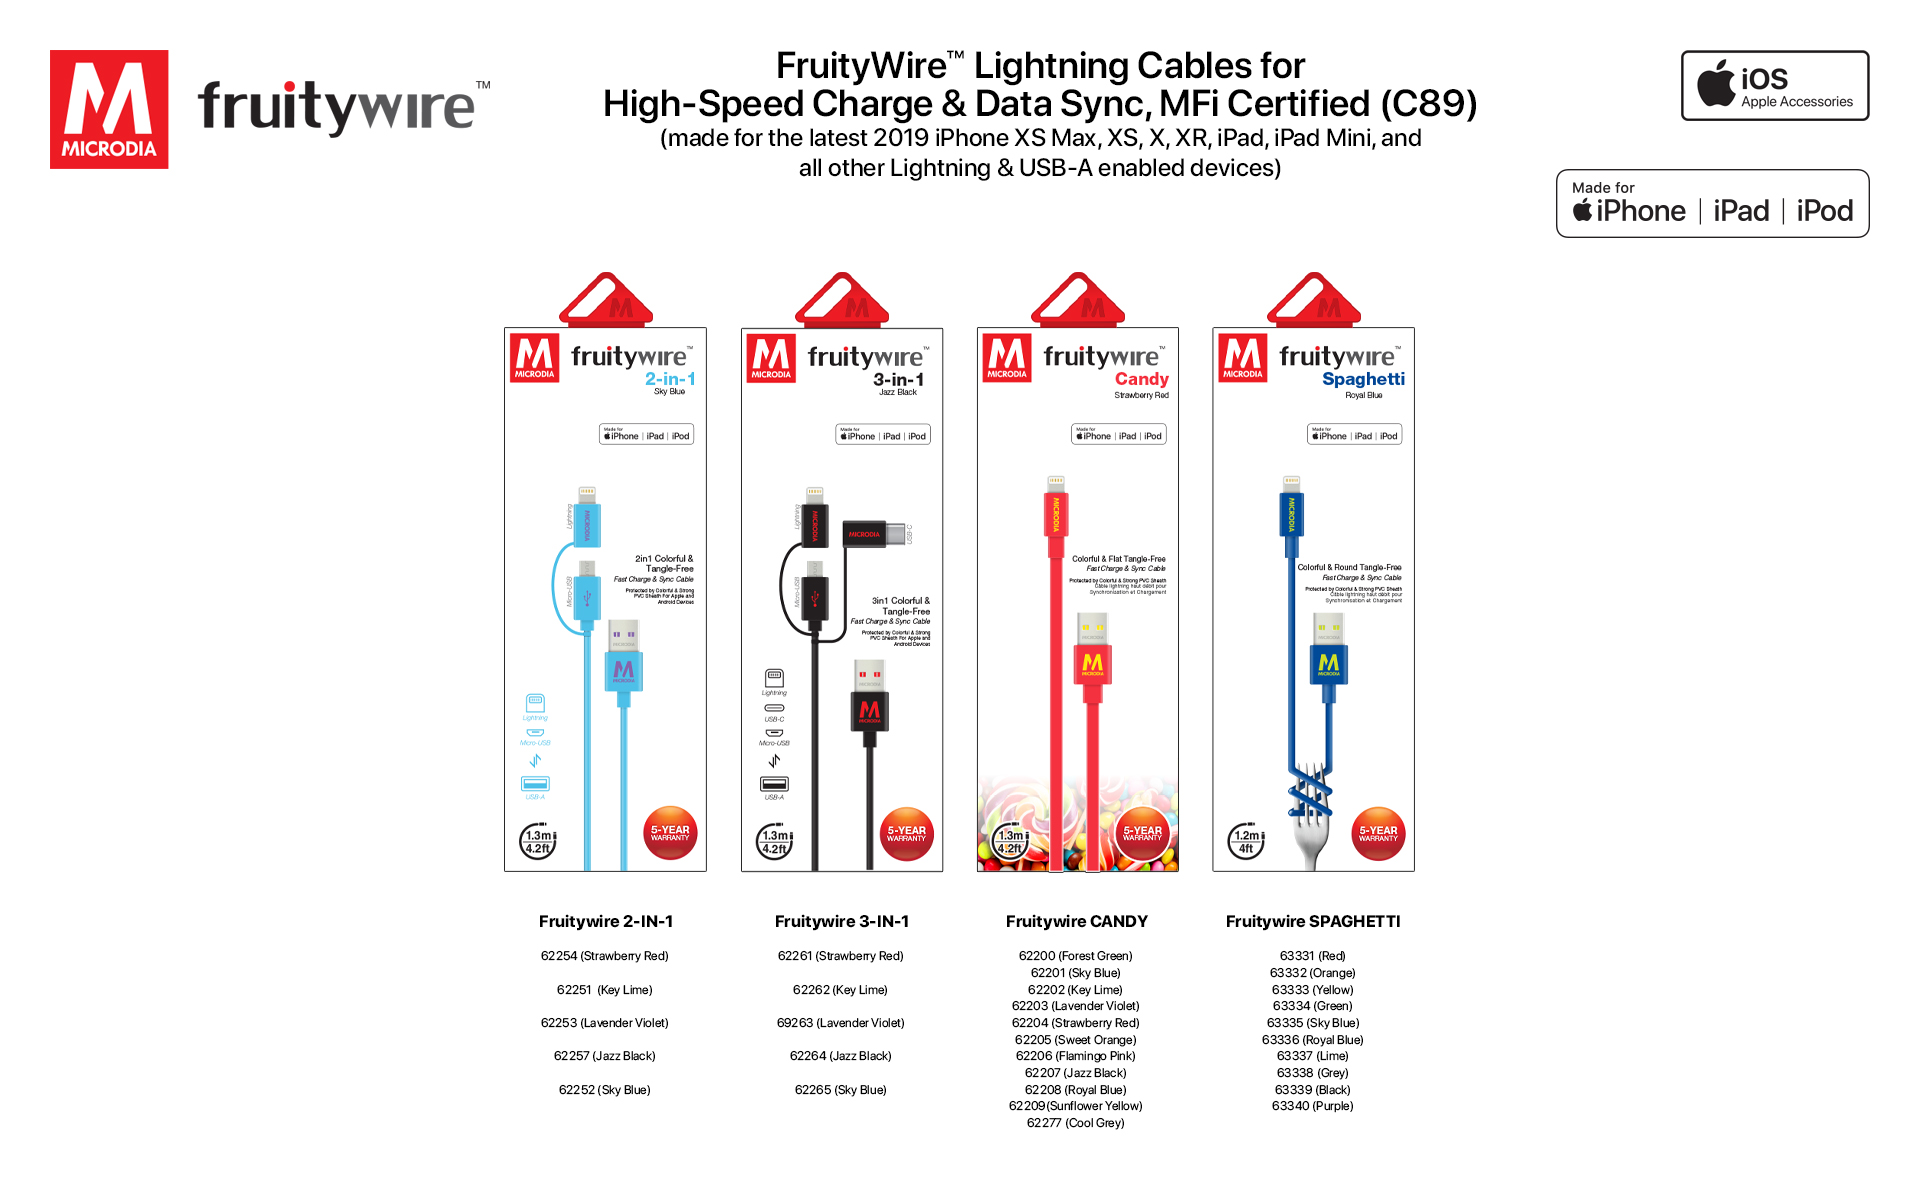 6. Fruitywire Lightning Cable